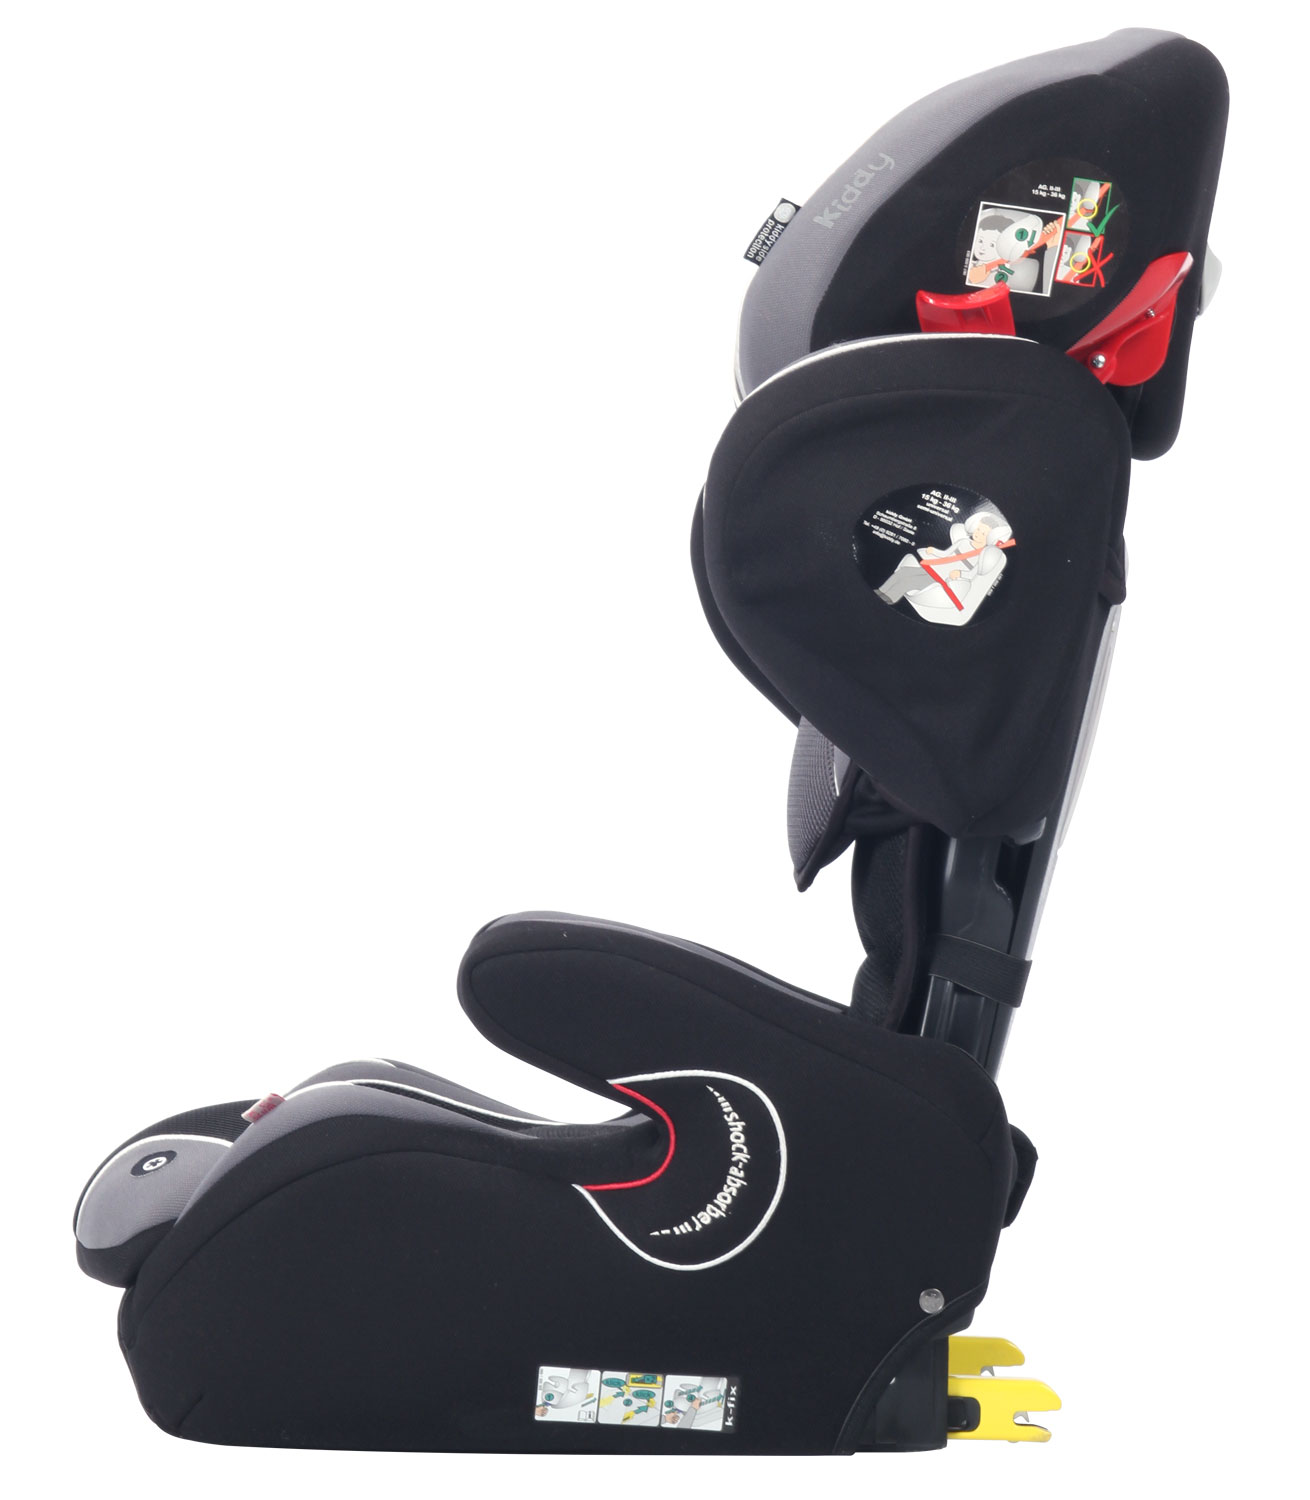 Kiddy Cruiserfix Pro Racing Black Isofix 4 to 12 Years Child Car Seat